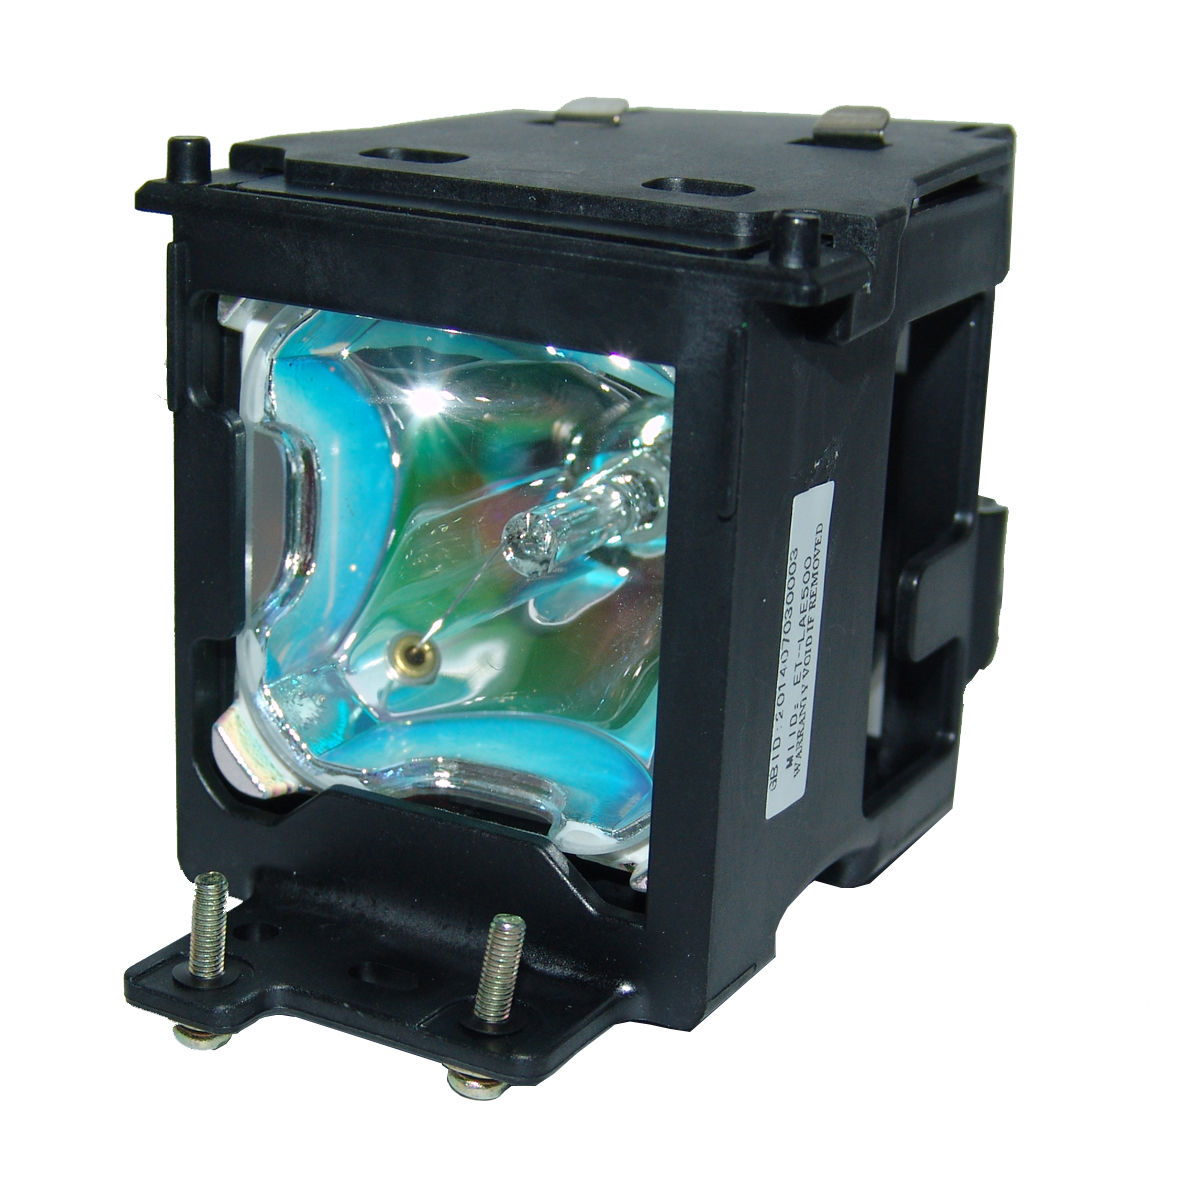 ET-LAE500 LAE500 ETLAE500 For Panasonic PT-AE500E PT-AE500 PT-AE500U PT-L500U Projector Bulb Lamp with housing projector lamp bulb et la701 etla701 for panasonic pt l711nt pt l711x pt l501e with housing